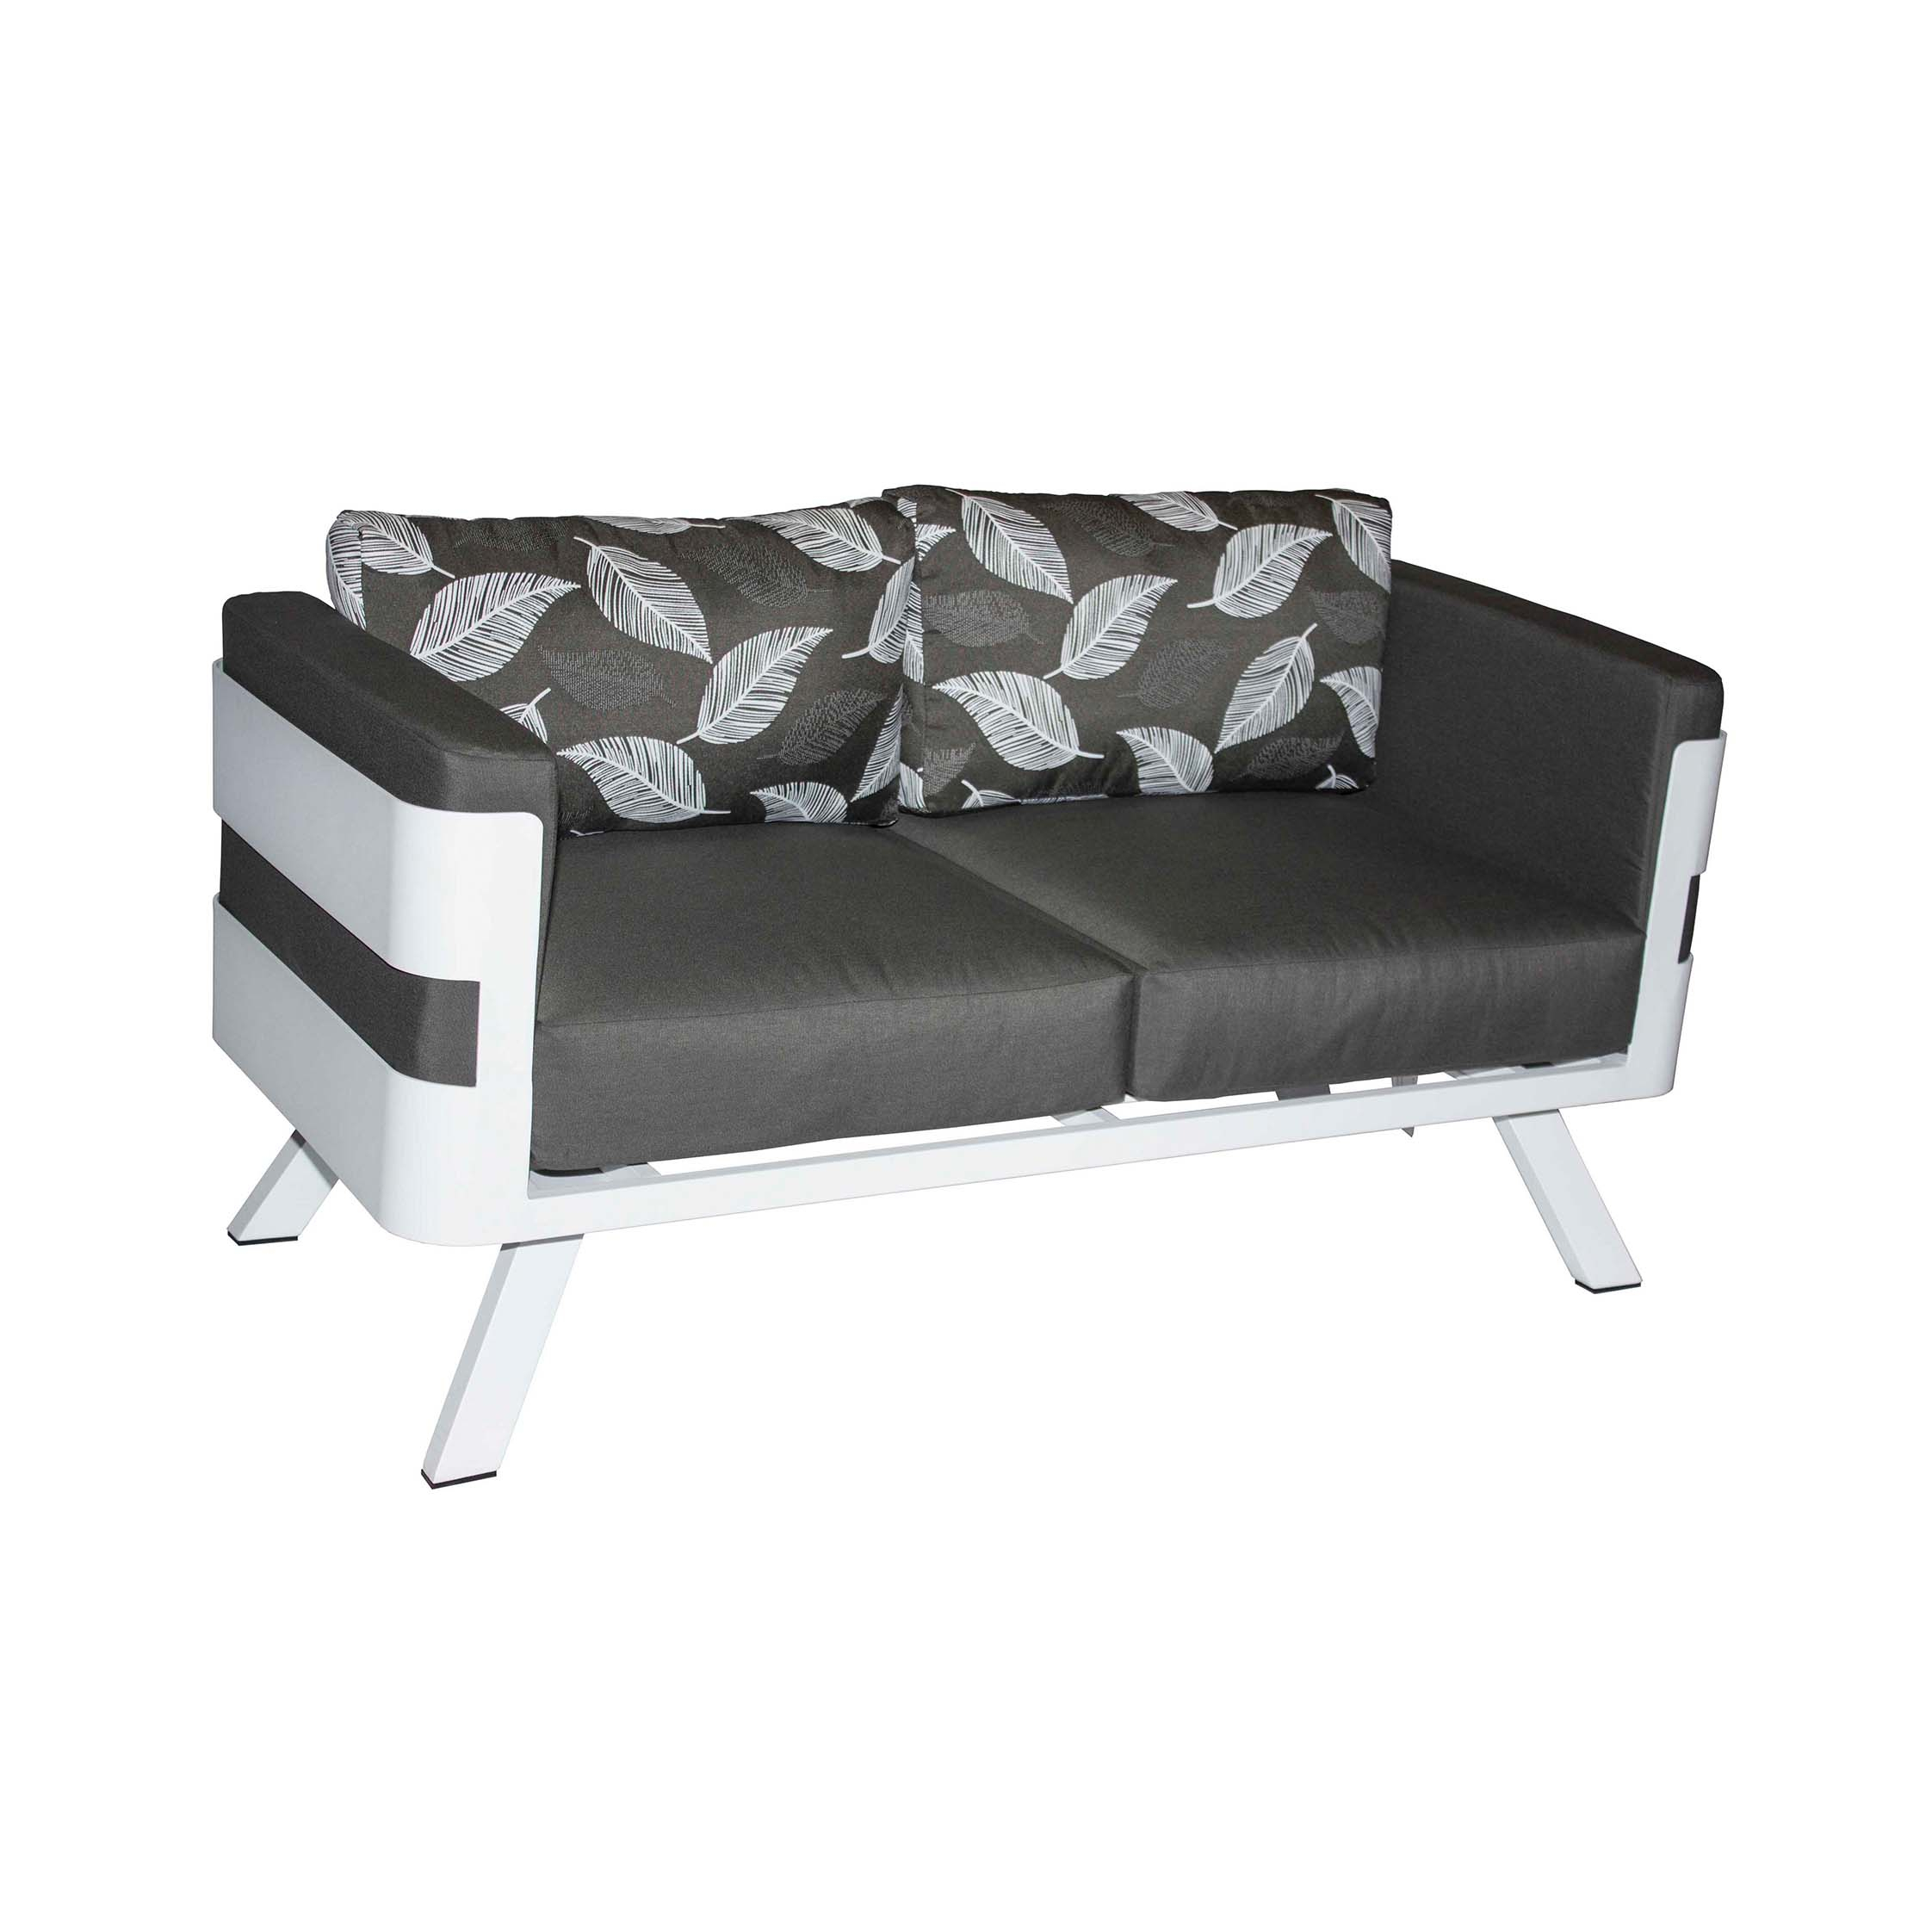 Lesotho 2 Seater Sofa | Patio Warehouse For Allie Dark Grey Sofa Chairs (Image 16 of 25)